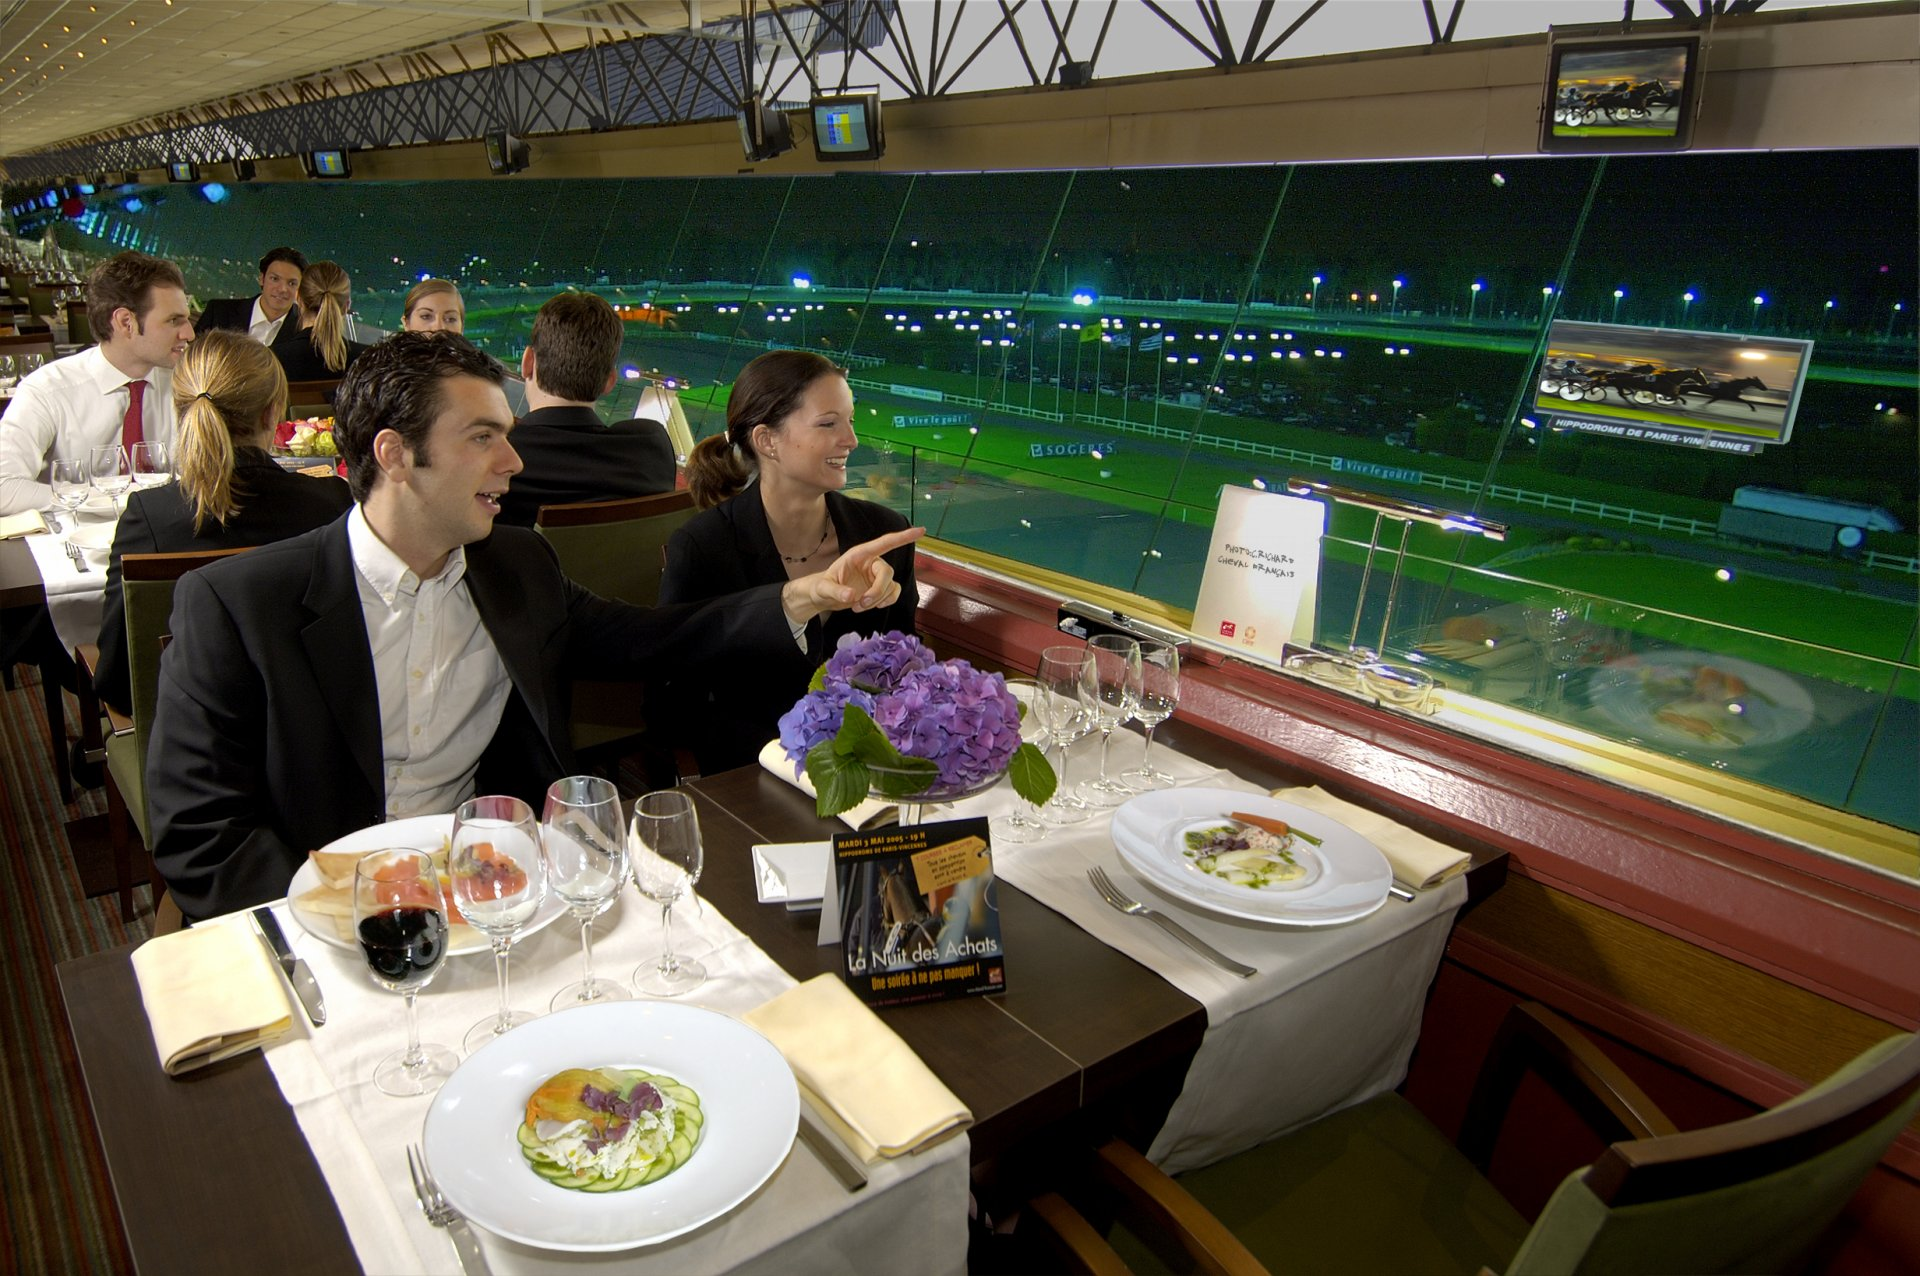 Hippodrome de Paris ideal gourmet – Hippodrome Paris-Vincennes Outsider Menu